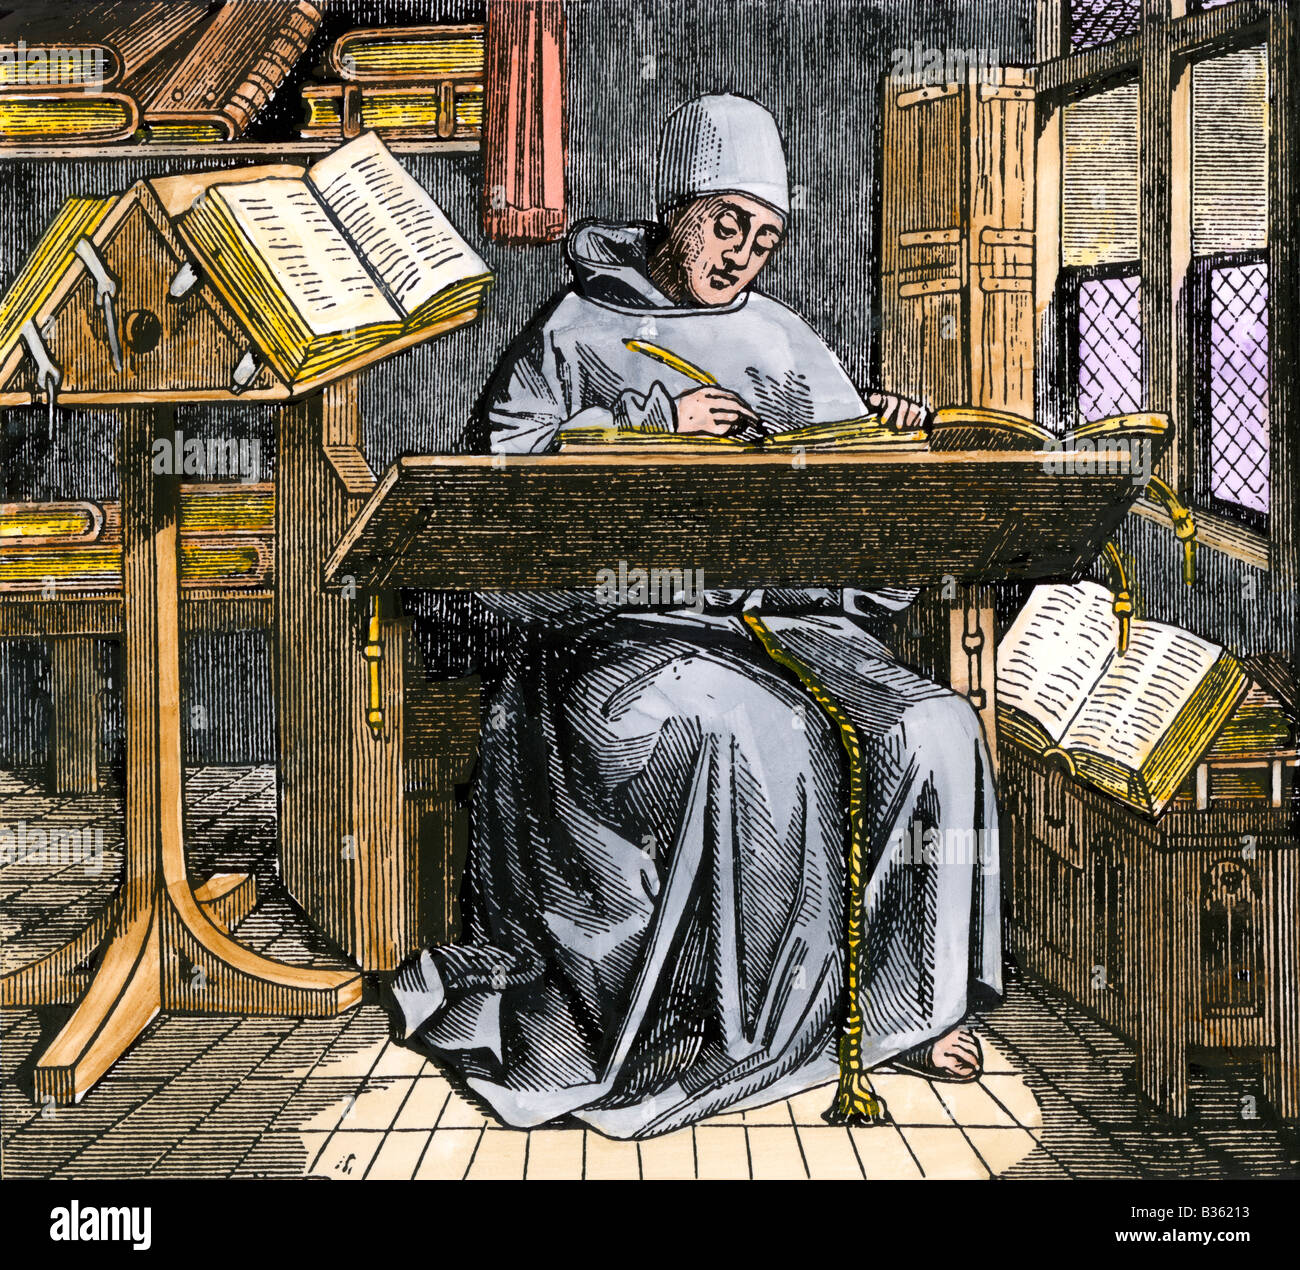 Medieval scribe writing at a desk surrounded by open manuscripts. Hand-colored woodcut - Stock Image